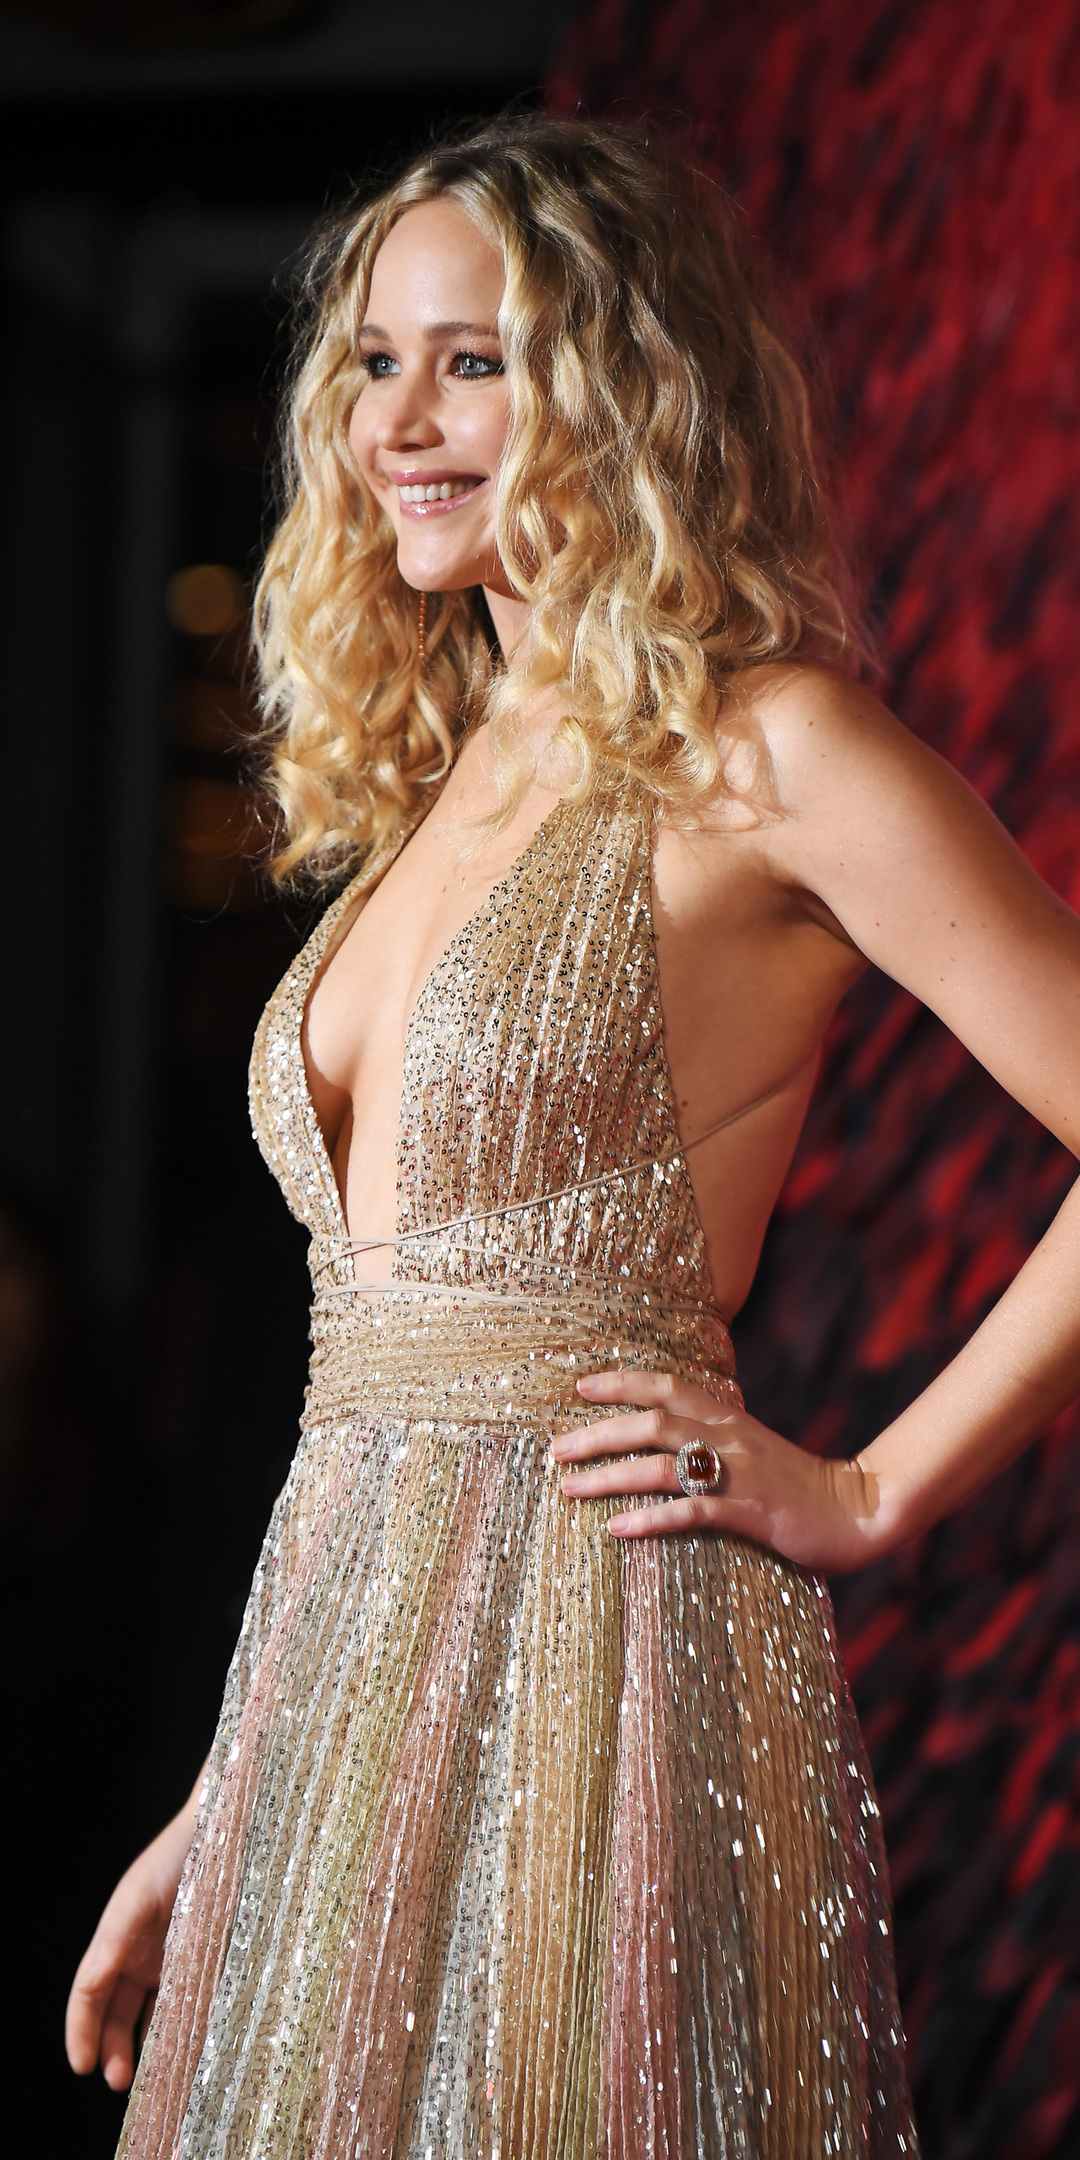 jennifer-lawrence-at-premiere-in-london-eh.jpg